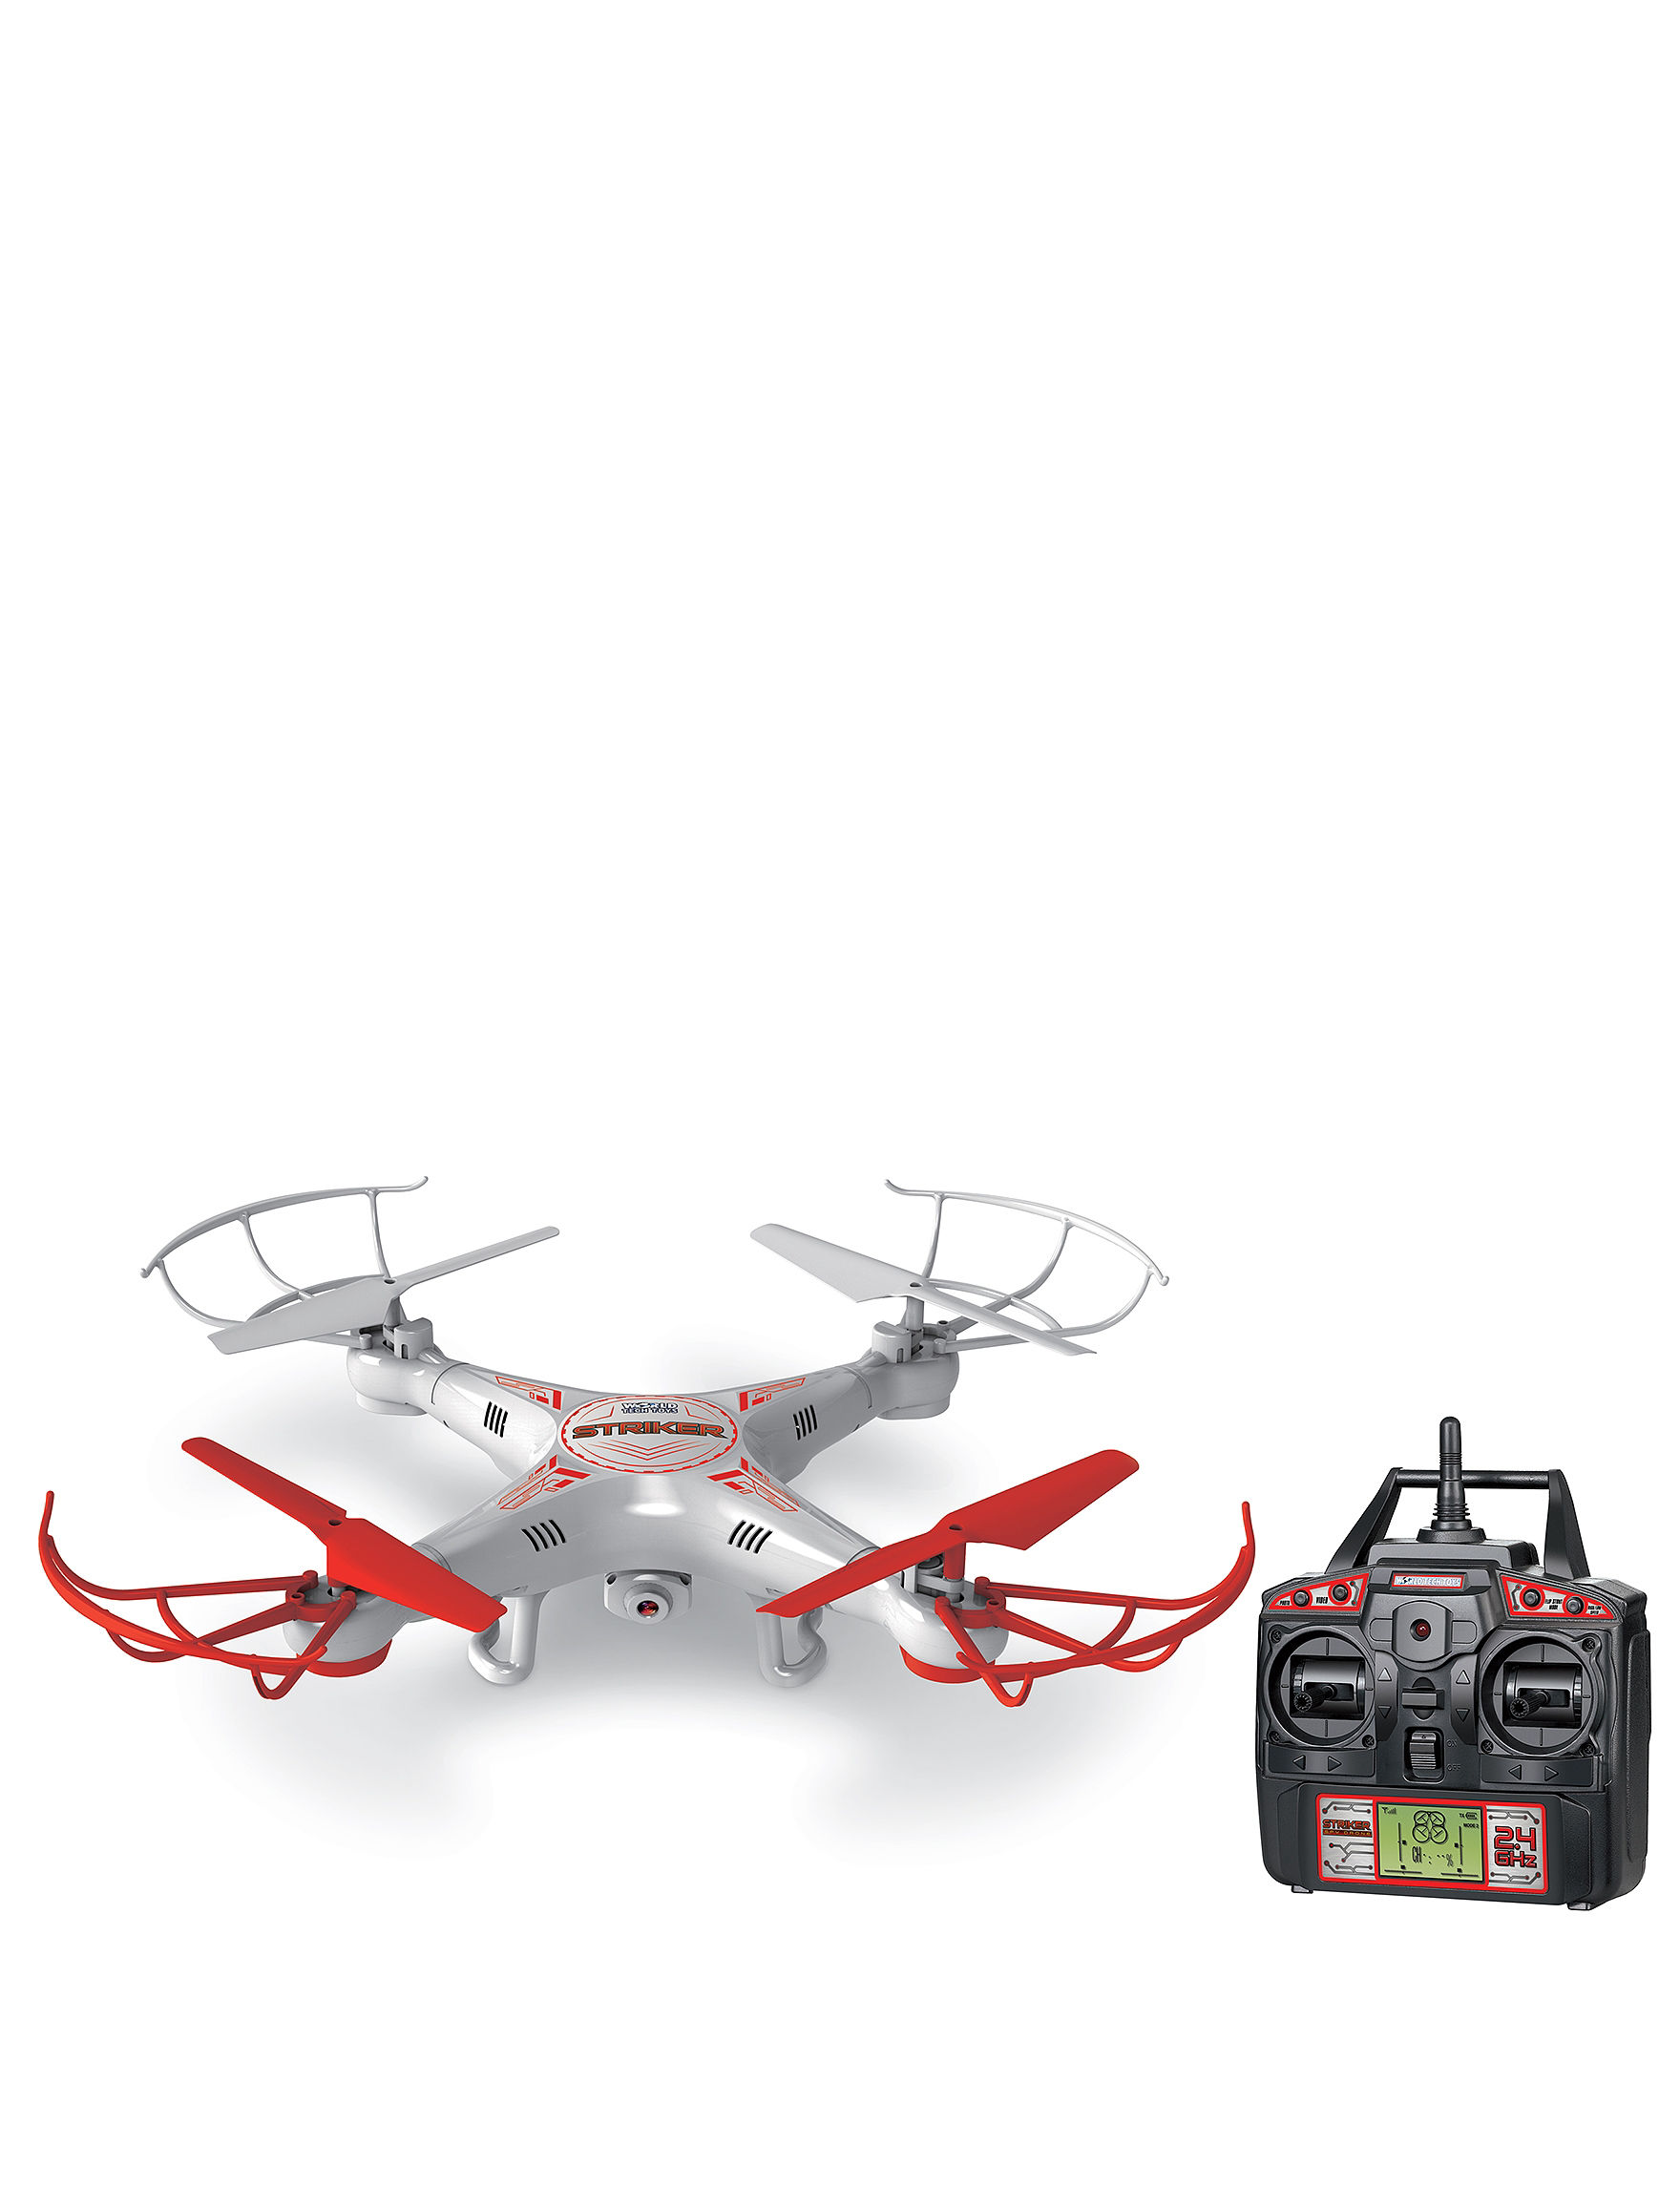 World Tech Toys Striker Drone with Camera - White - World Tech Toys